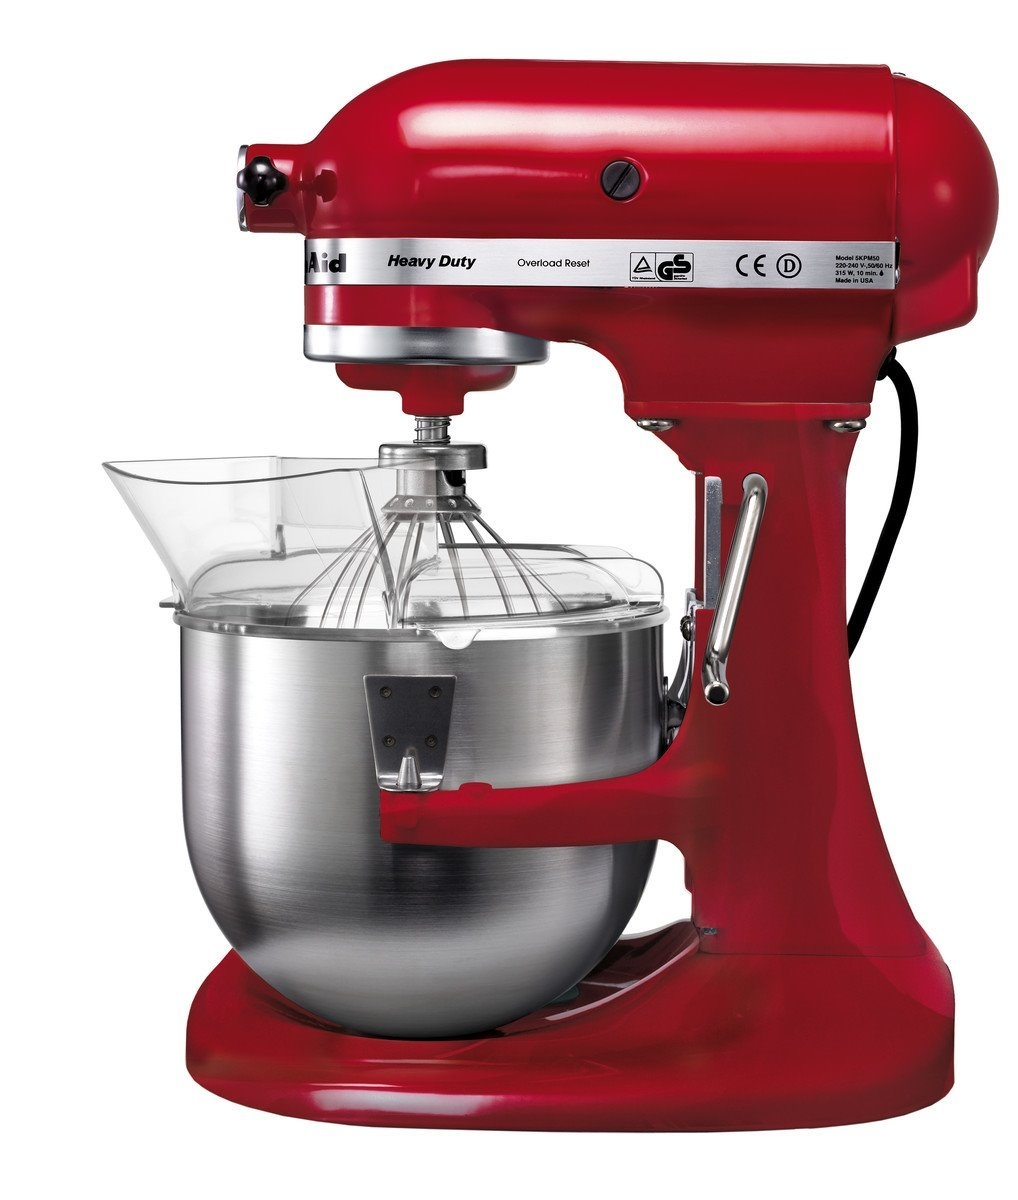 Mixer cu bol Heavy Duty 5KPM5E, 10 trepte de viteza, 4,8 L, 315W, KitchenAid imagine